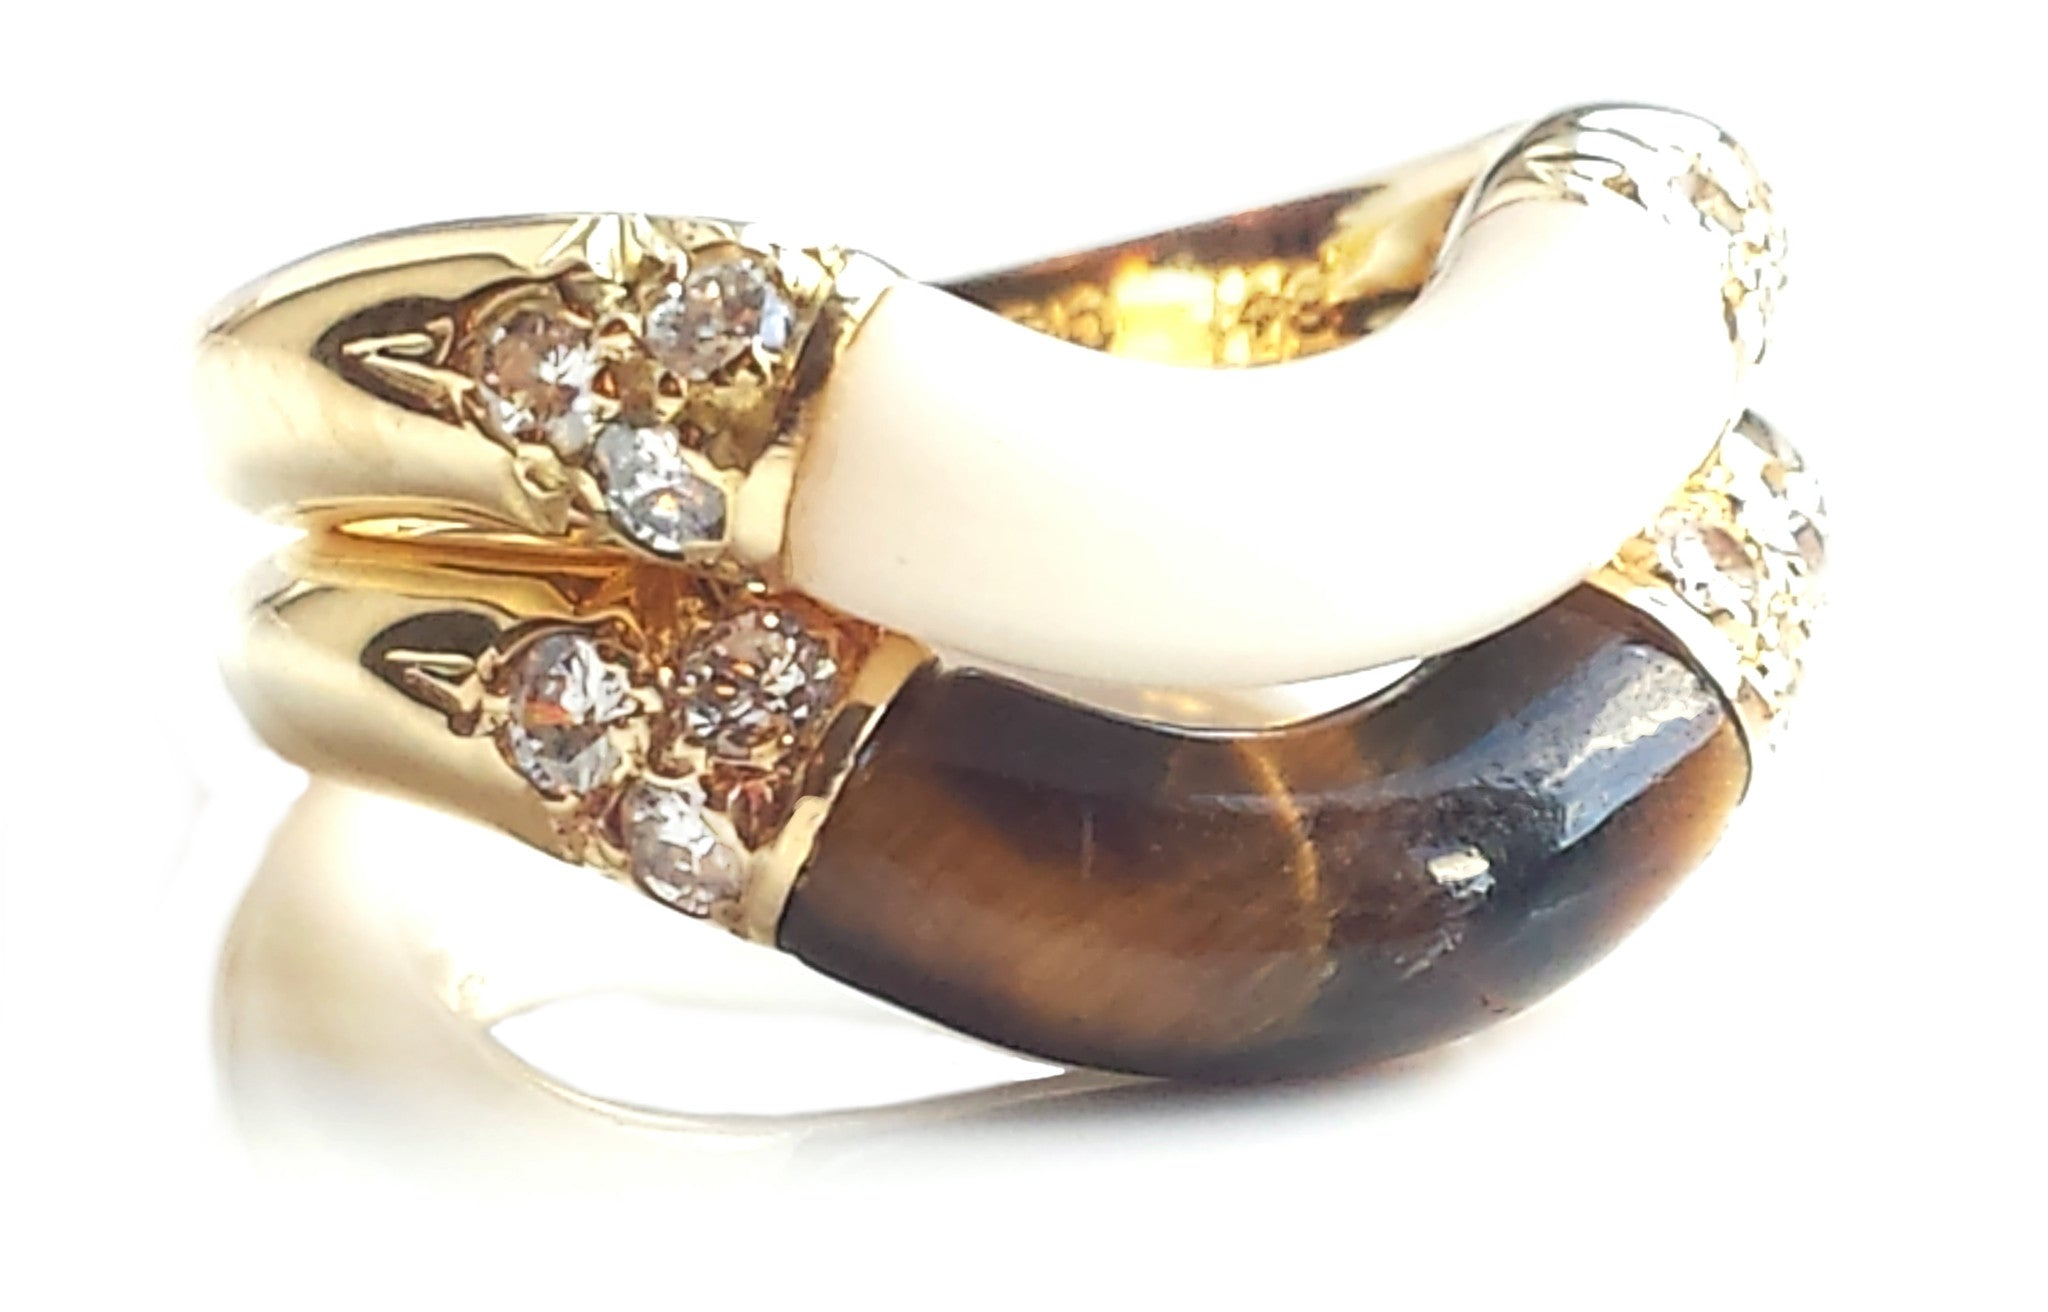 products tigers elis designer midcentury ring finnish silver tiger eye finish rings sterling my img kauppi modern